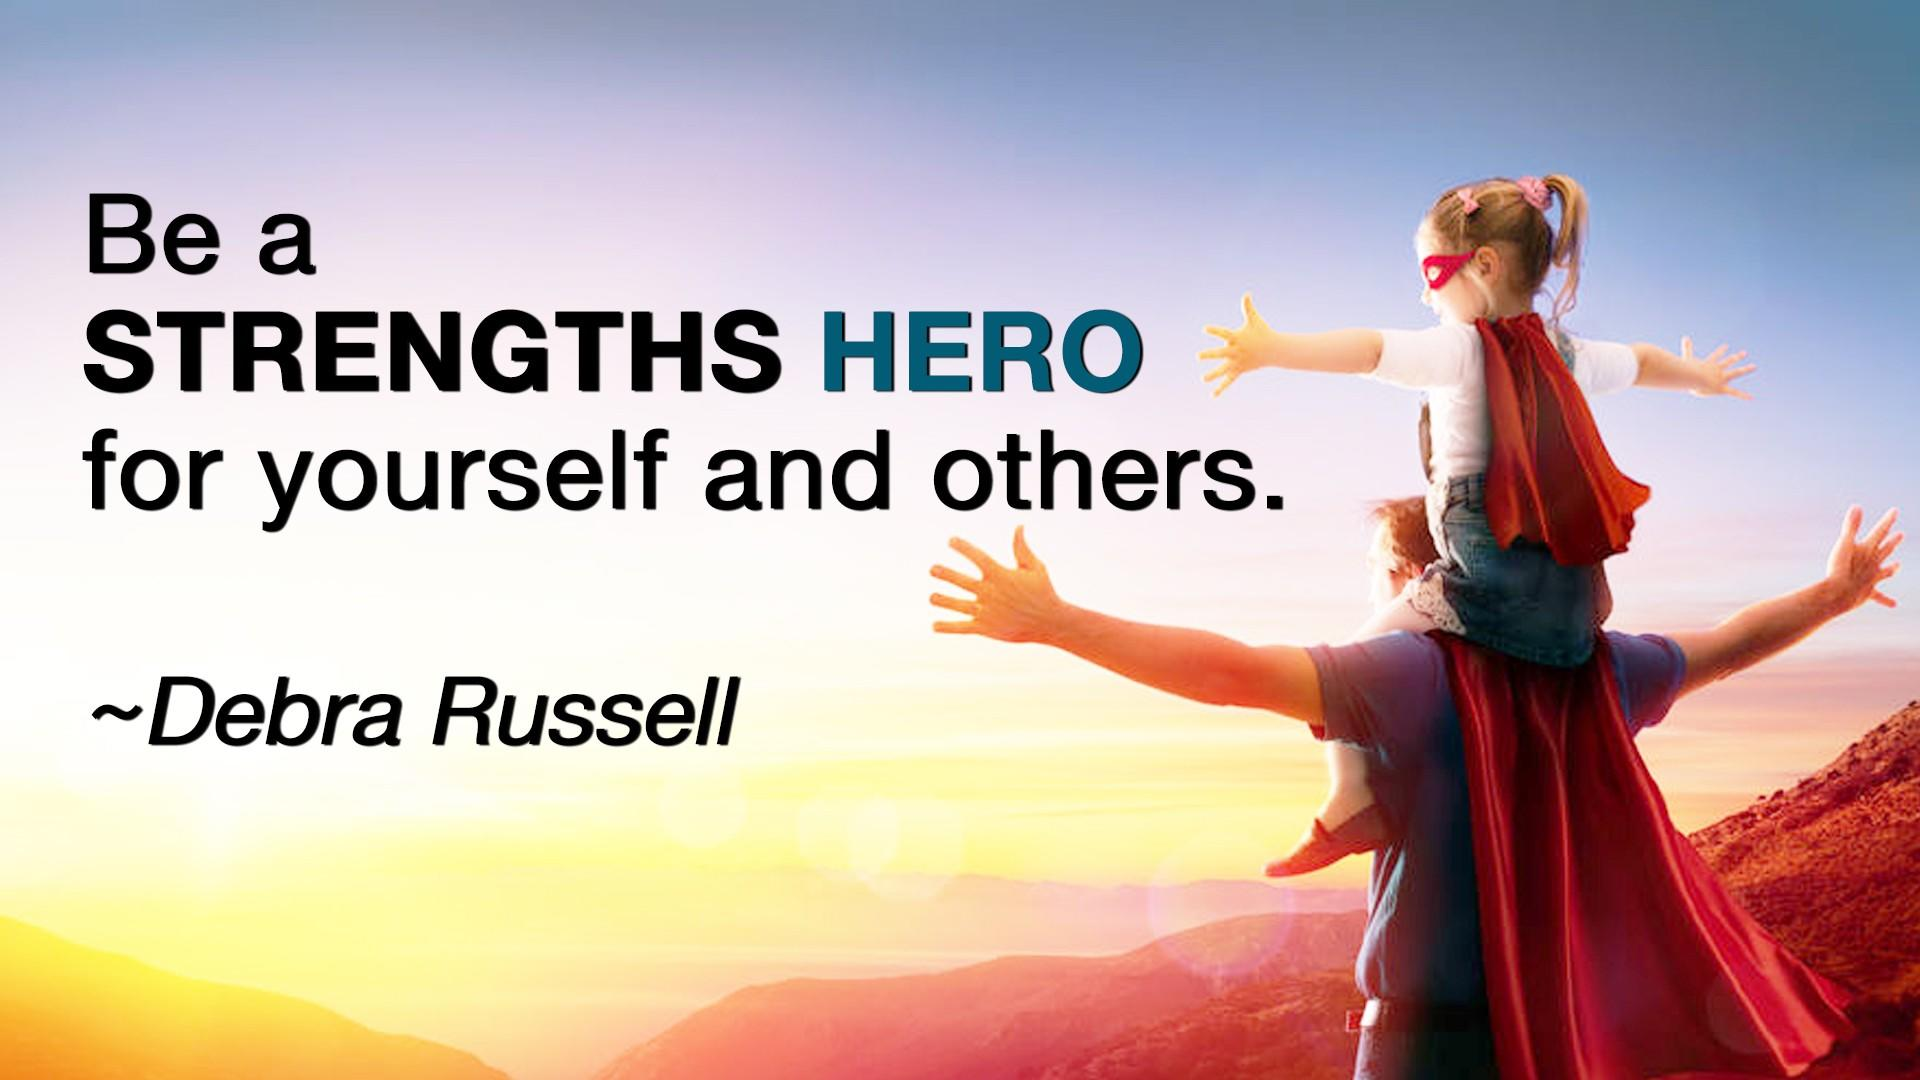 Debra Russell quote - Be a Strengths Hero for yourself and others.